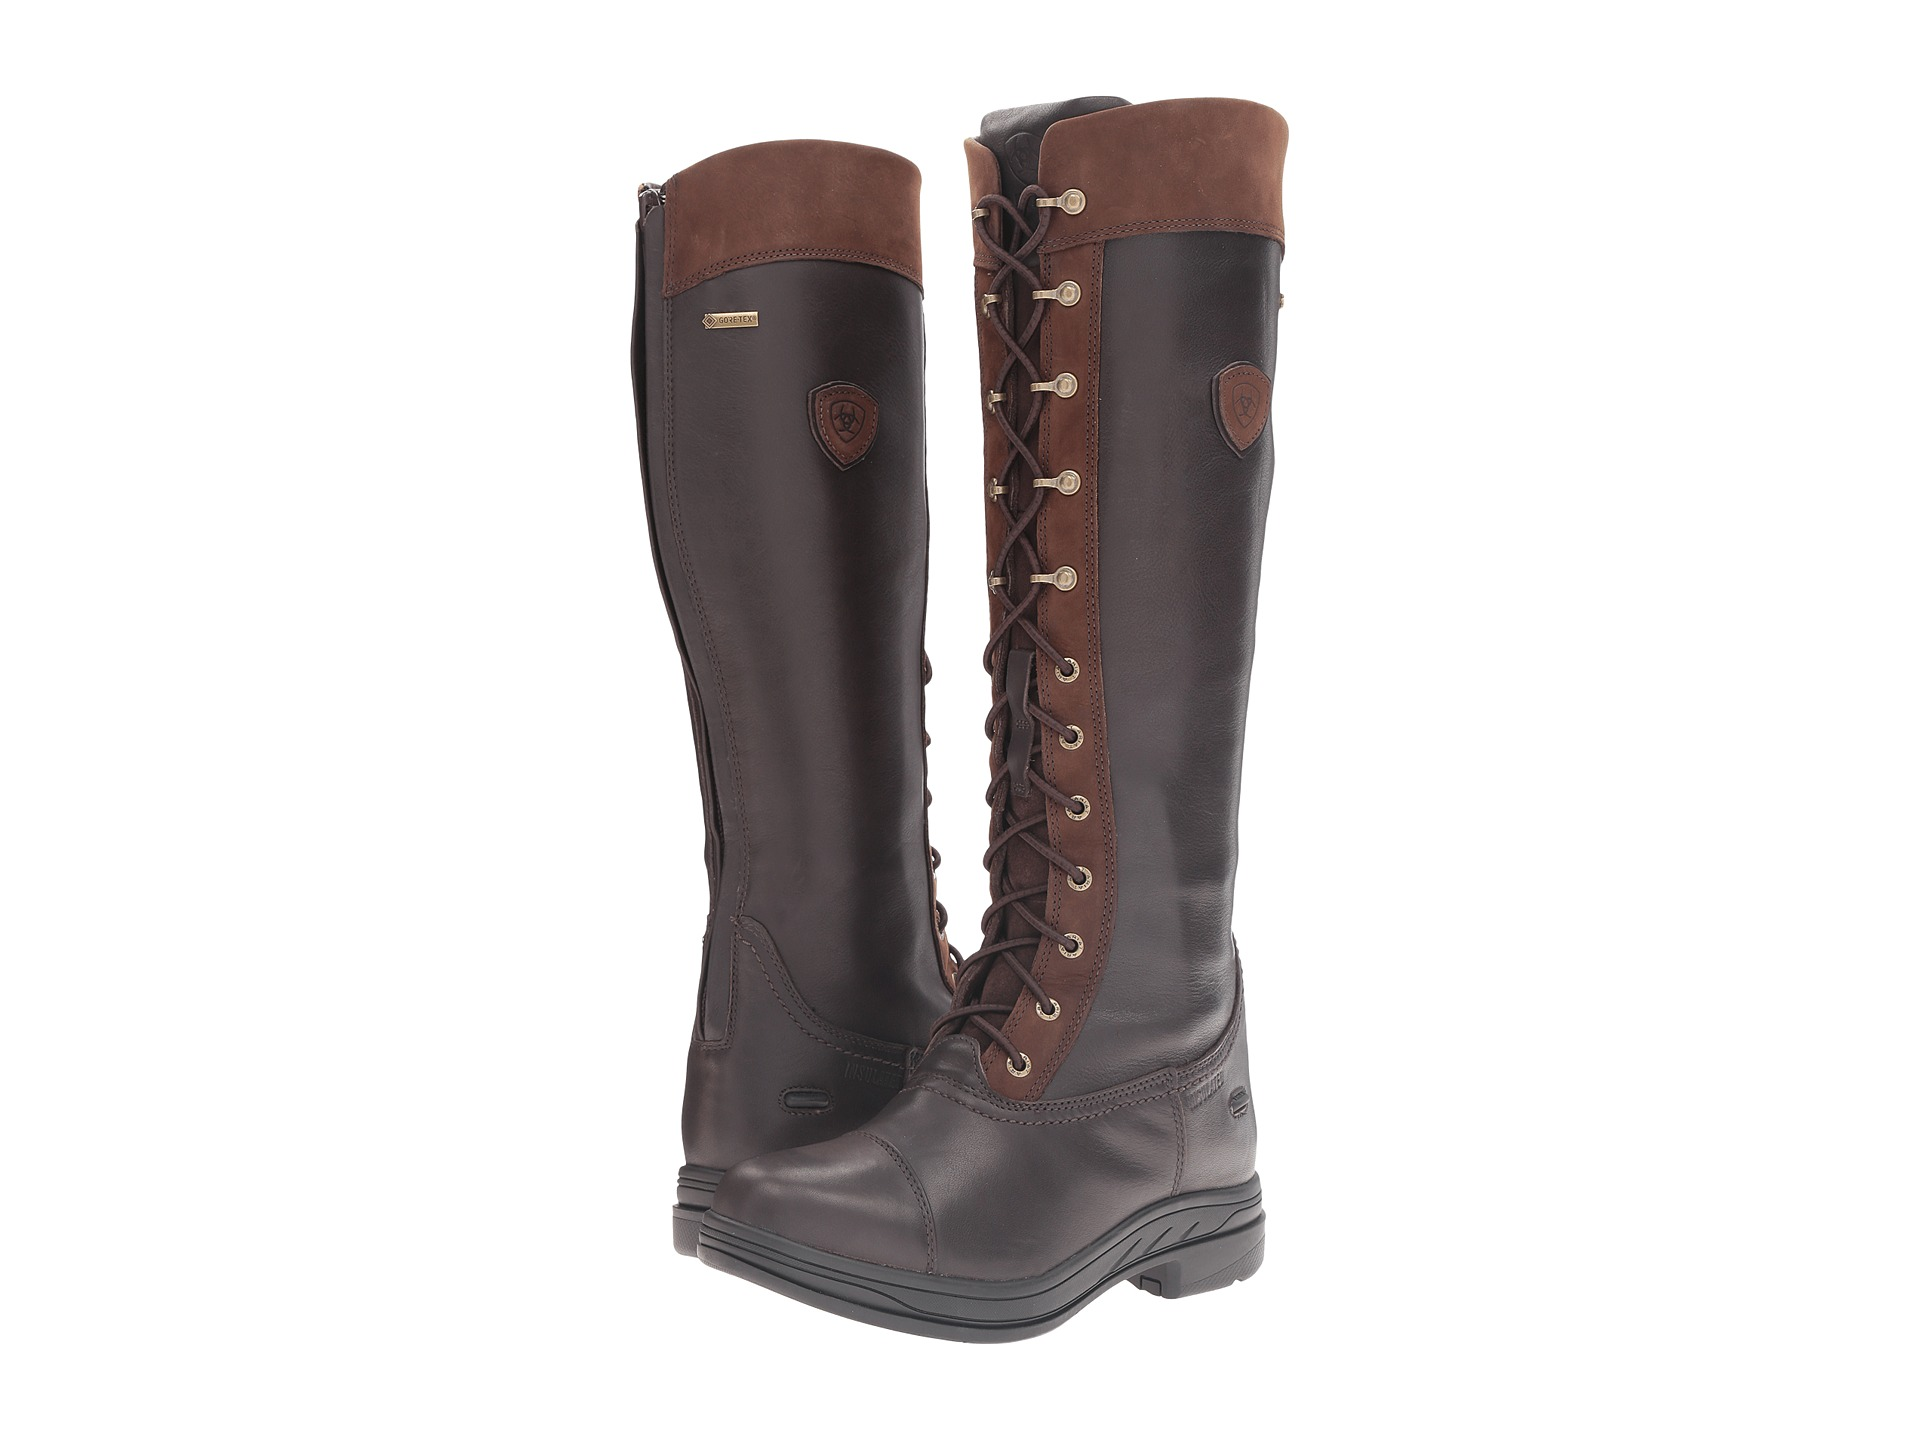 Insulated Ariat Boots Coltford Boots